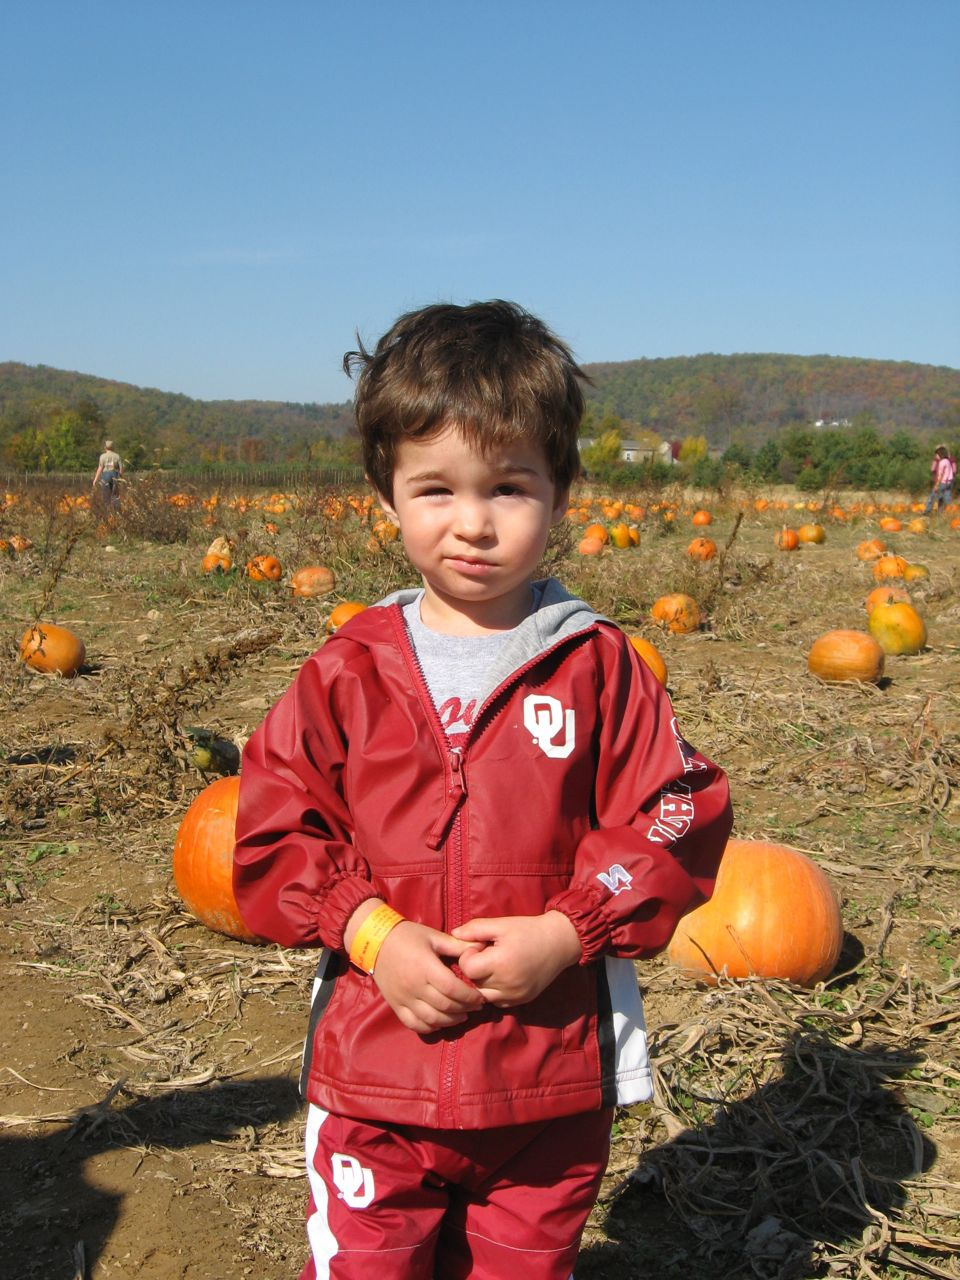 Nathan in the Pumpkin Patch